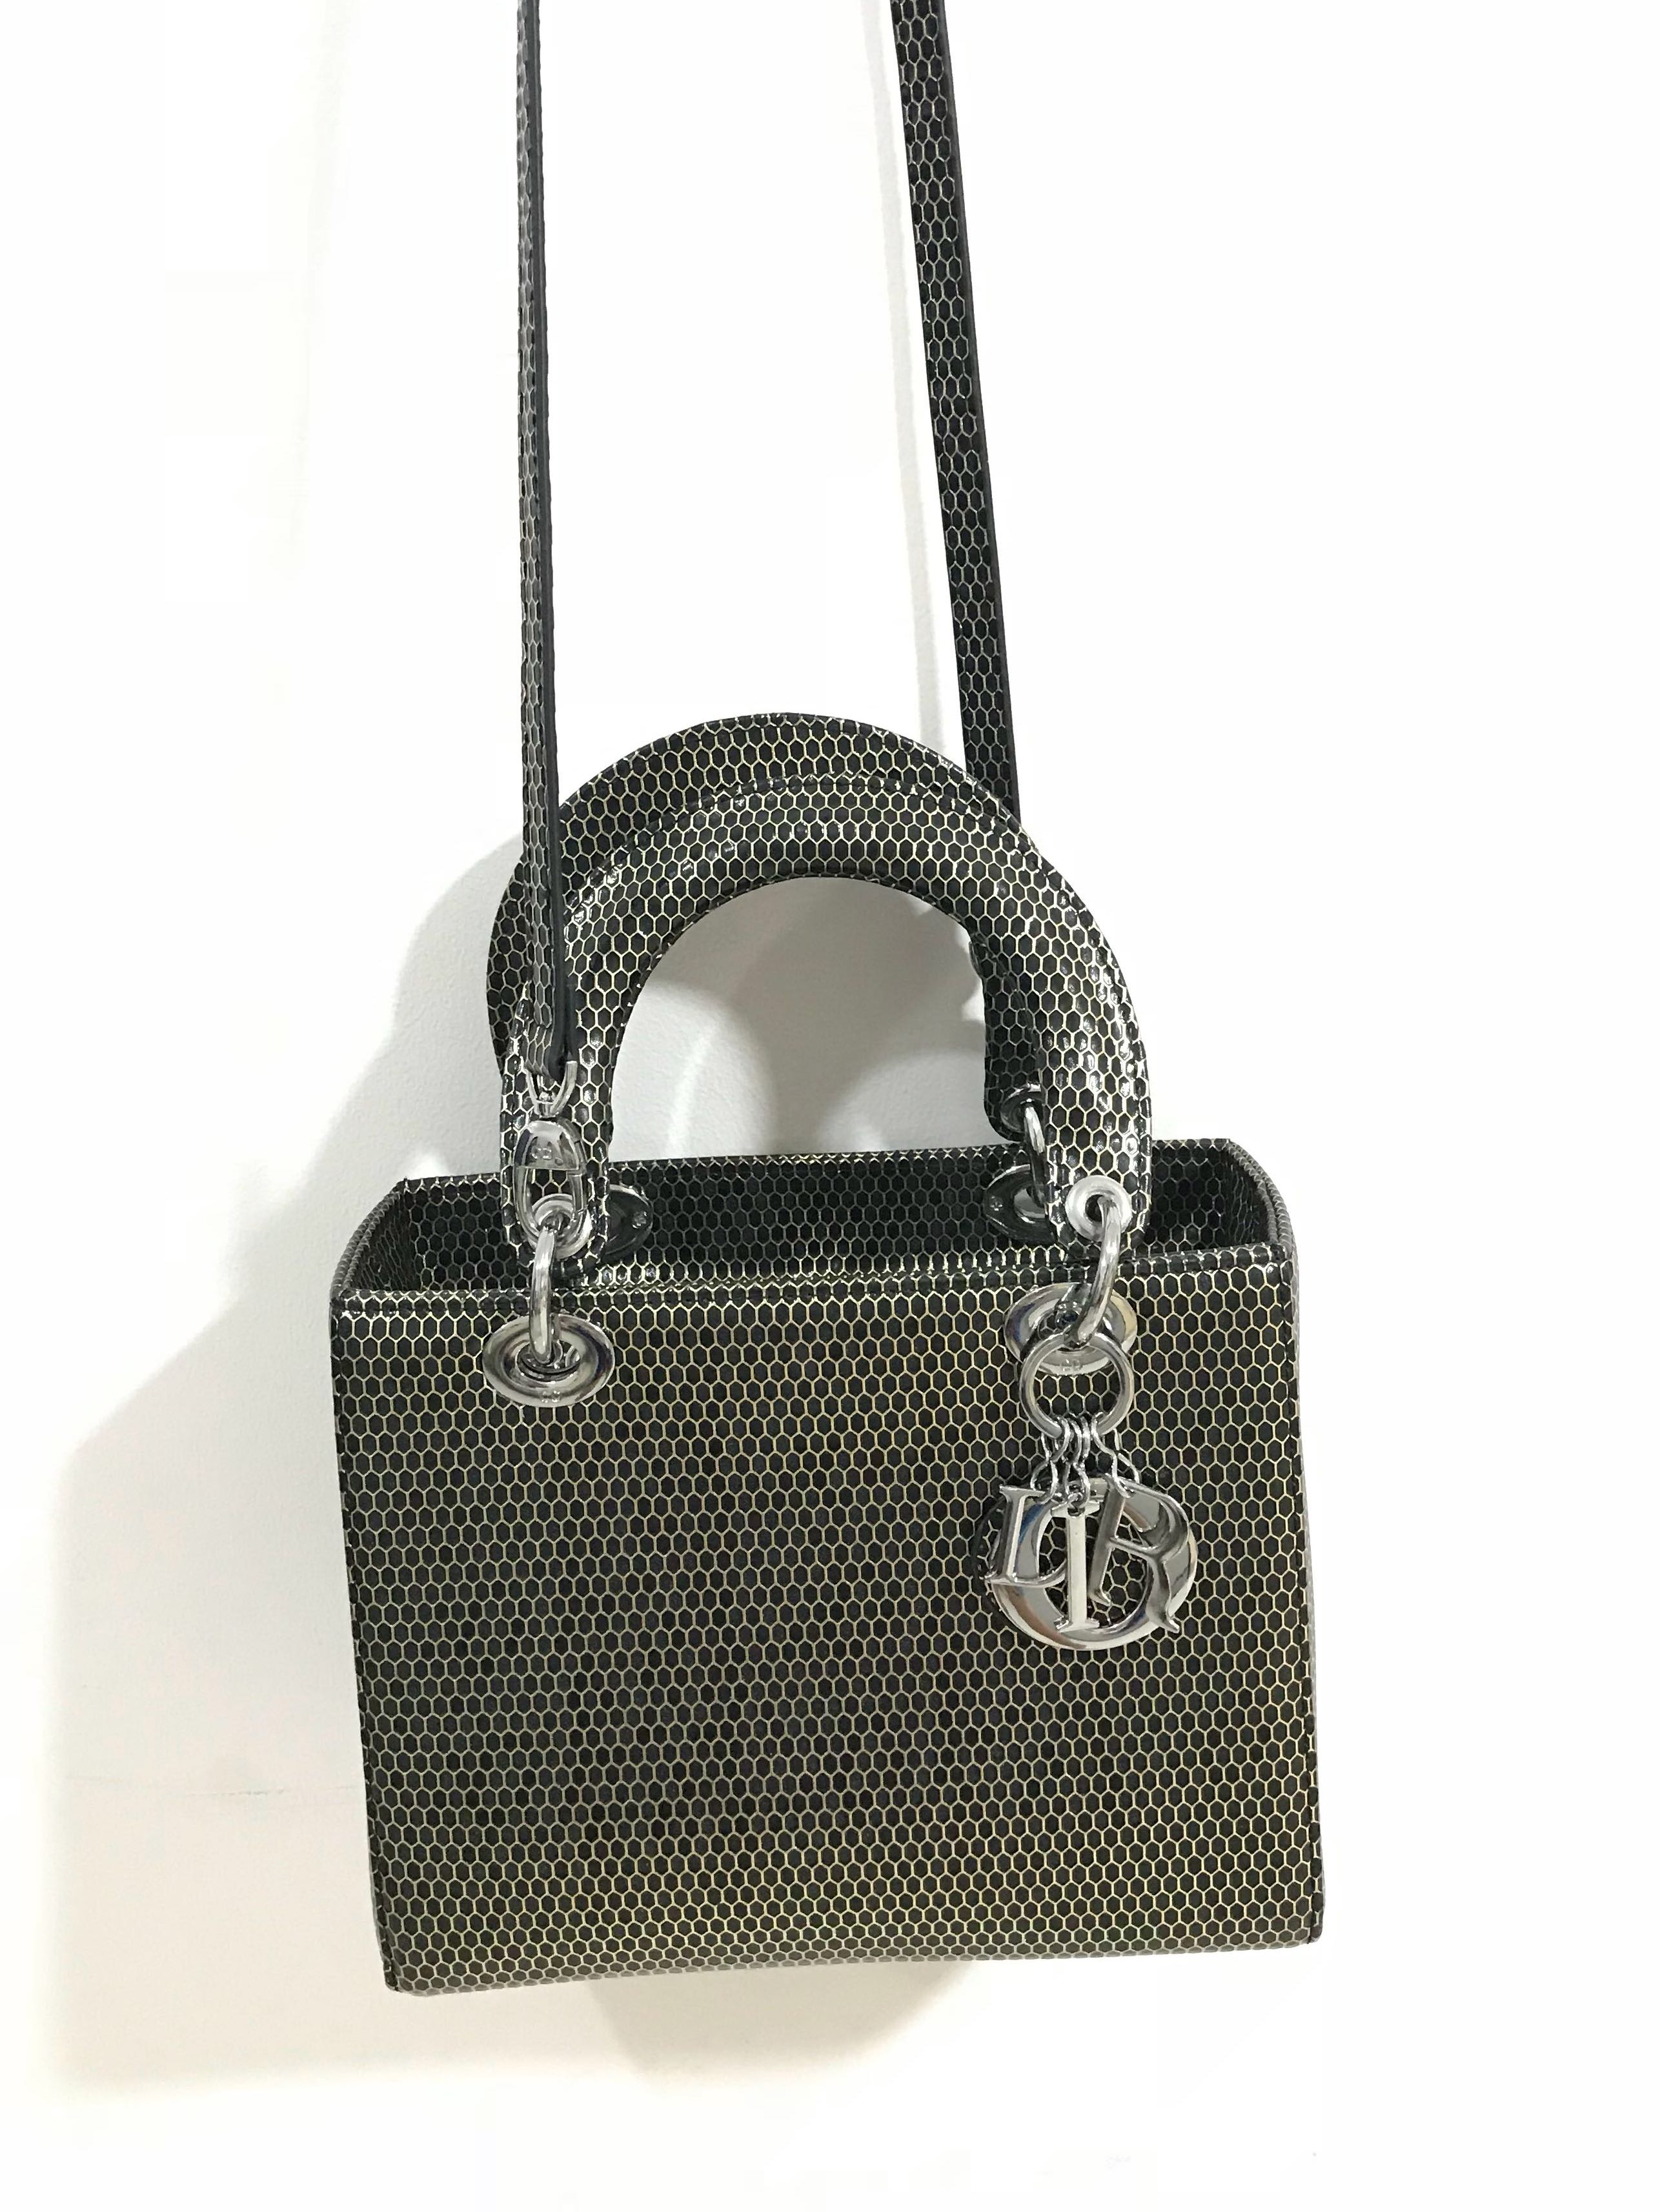 a1aad08dfec2 Lady Dior Bag Price 2018 | Stanford Center for Opportunity Policy in ...